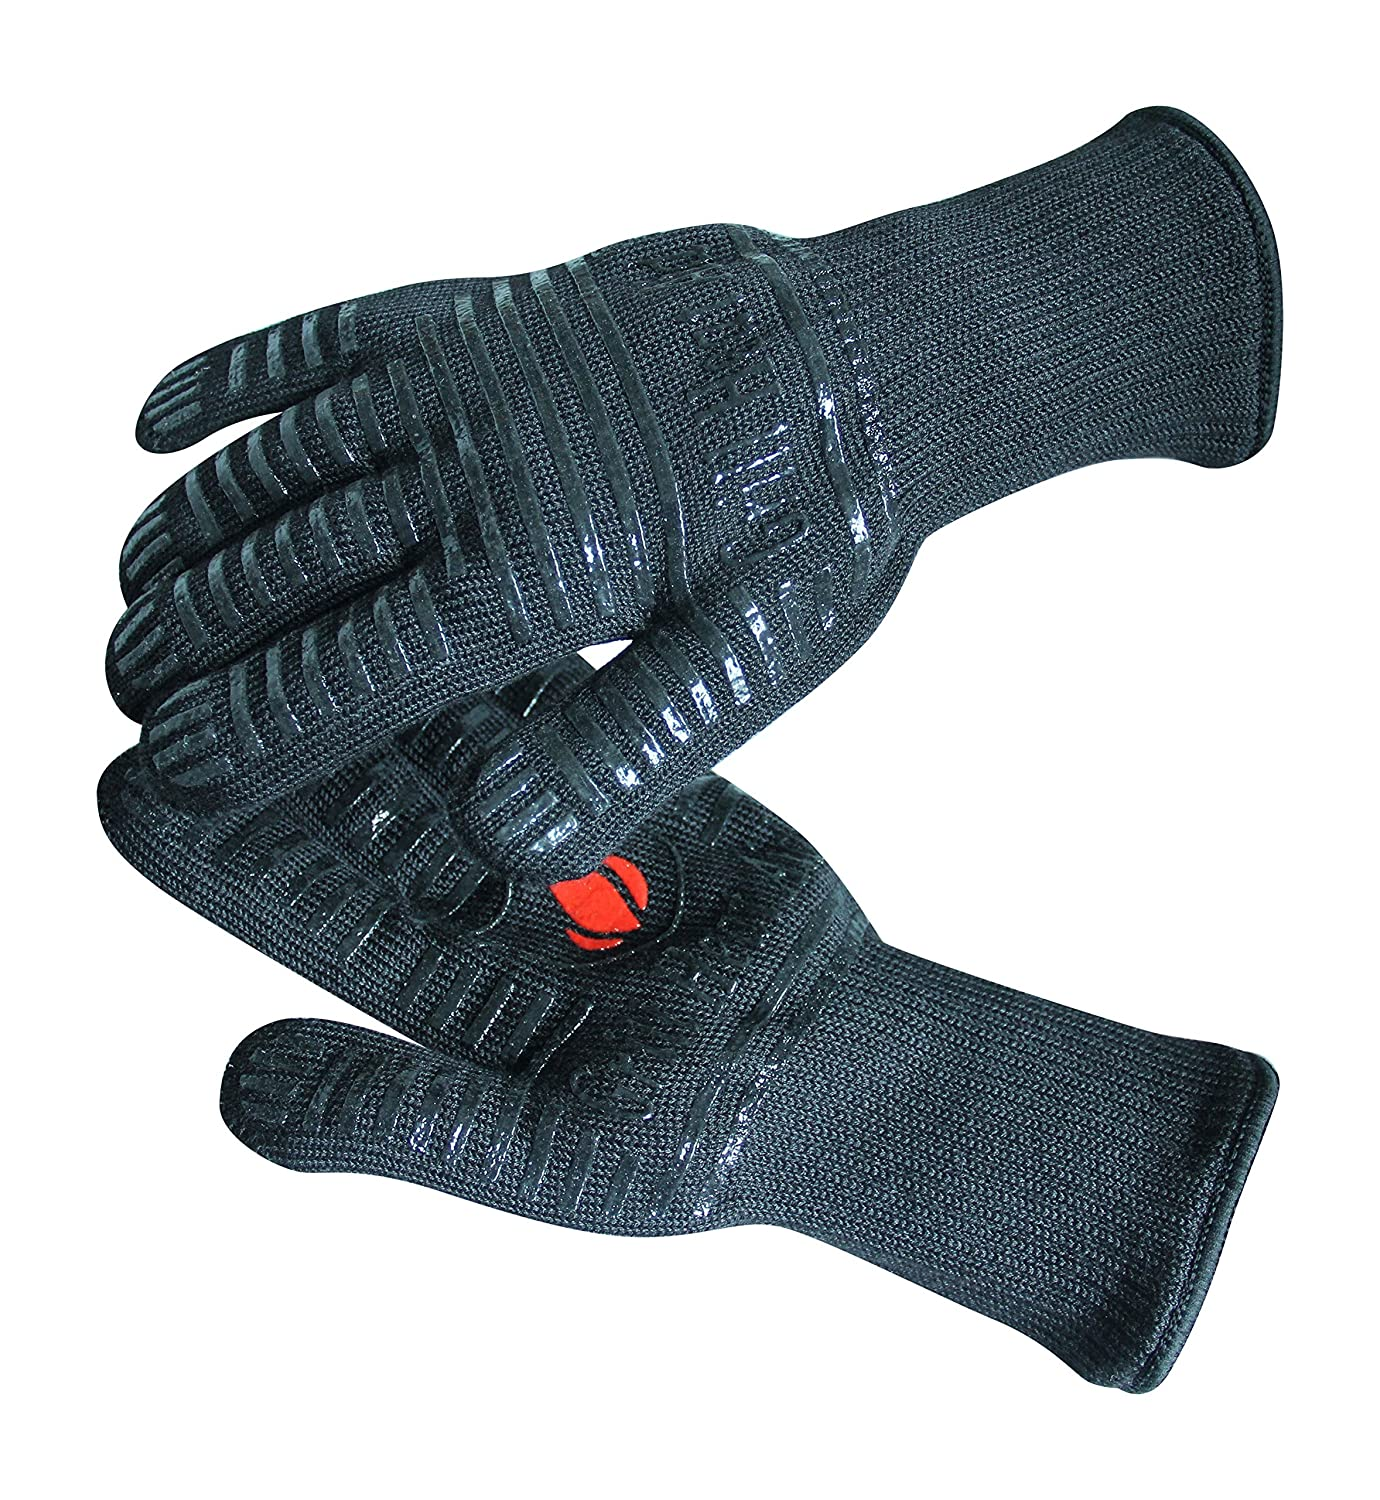 Premium Cooking Gloves, Heat Resistant, Oven, BBQ Mitts by Kitchen Ready (B00RUBZNDQ)